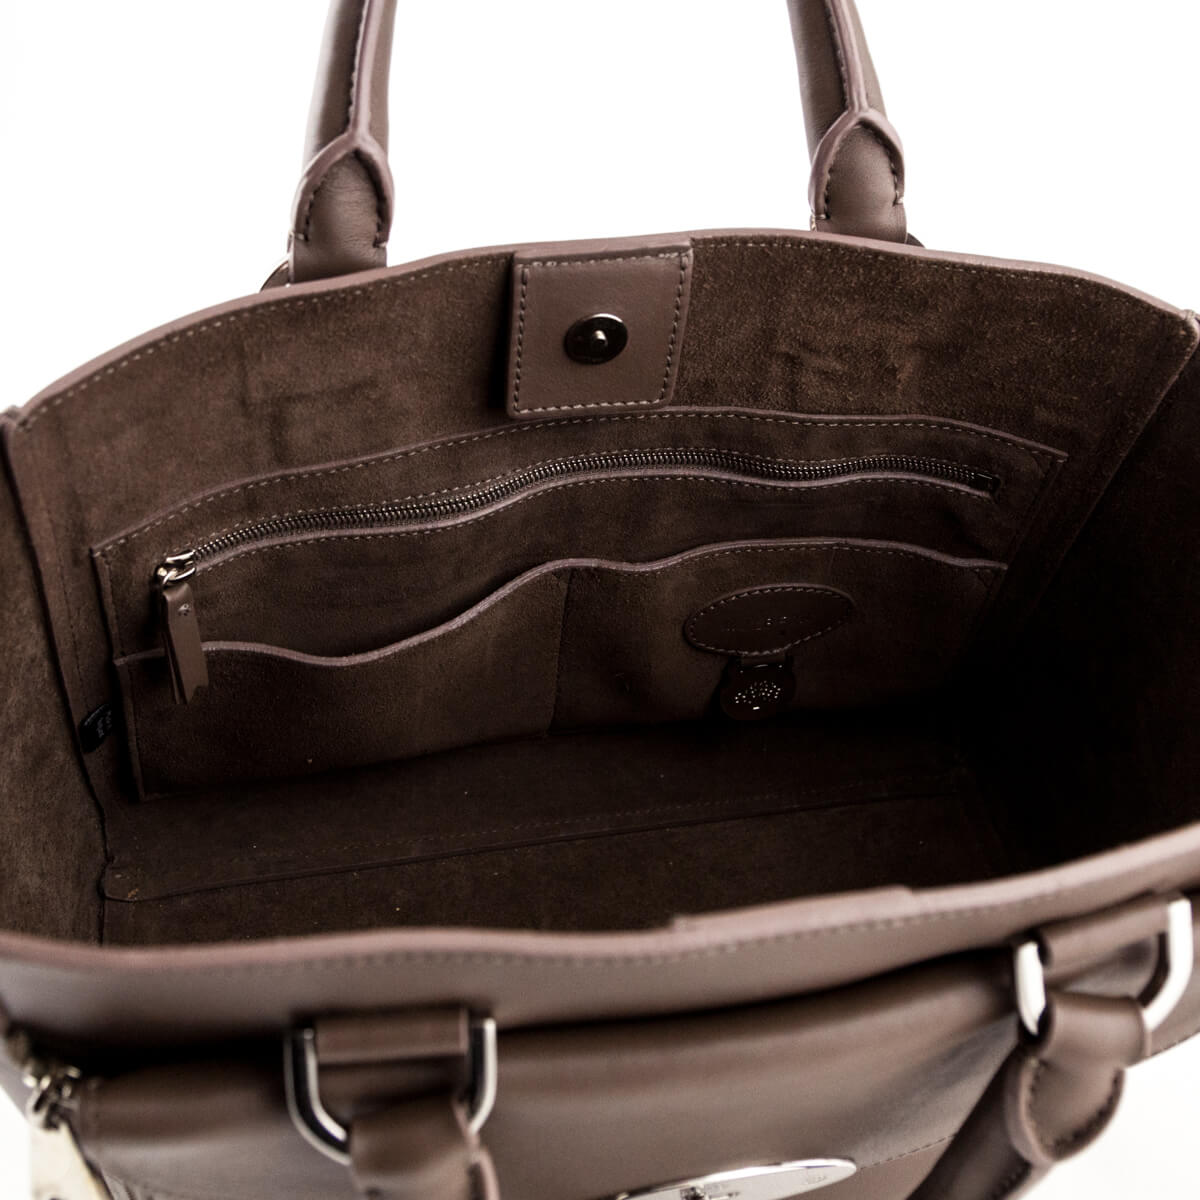 c8d5d85860f9 inexpensive mulberry willow tote sale queensland 9325f 66be9